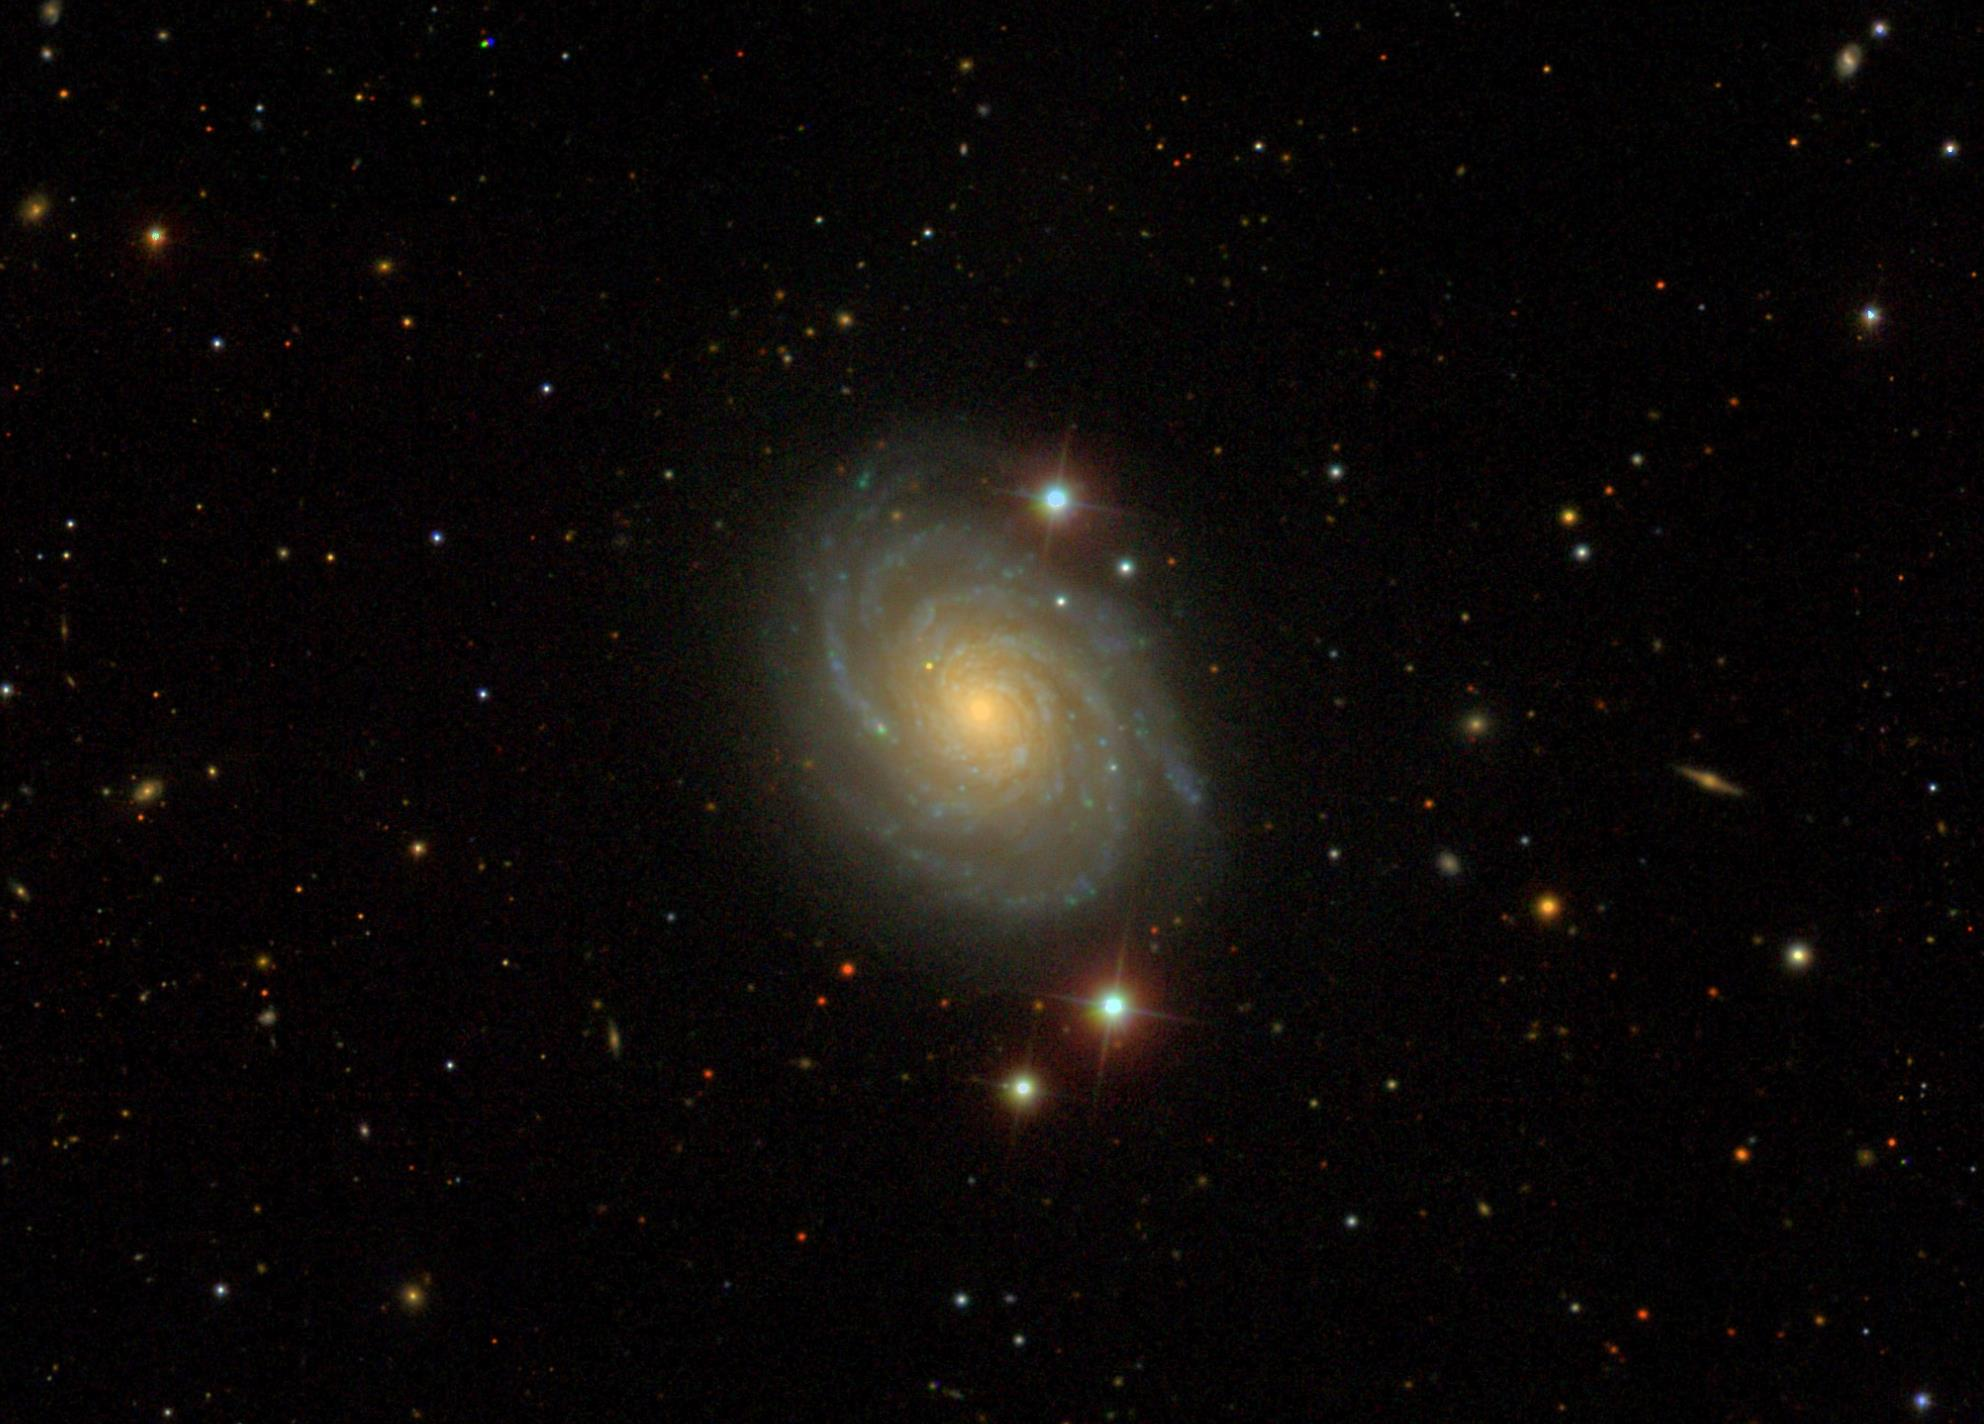 An SDSS image of the area of sky near galaxy NGC 4030